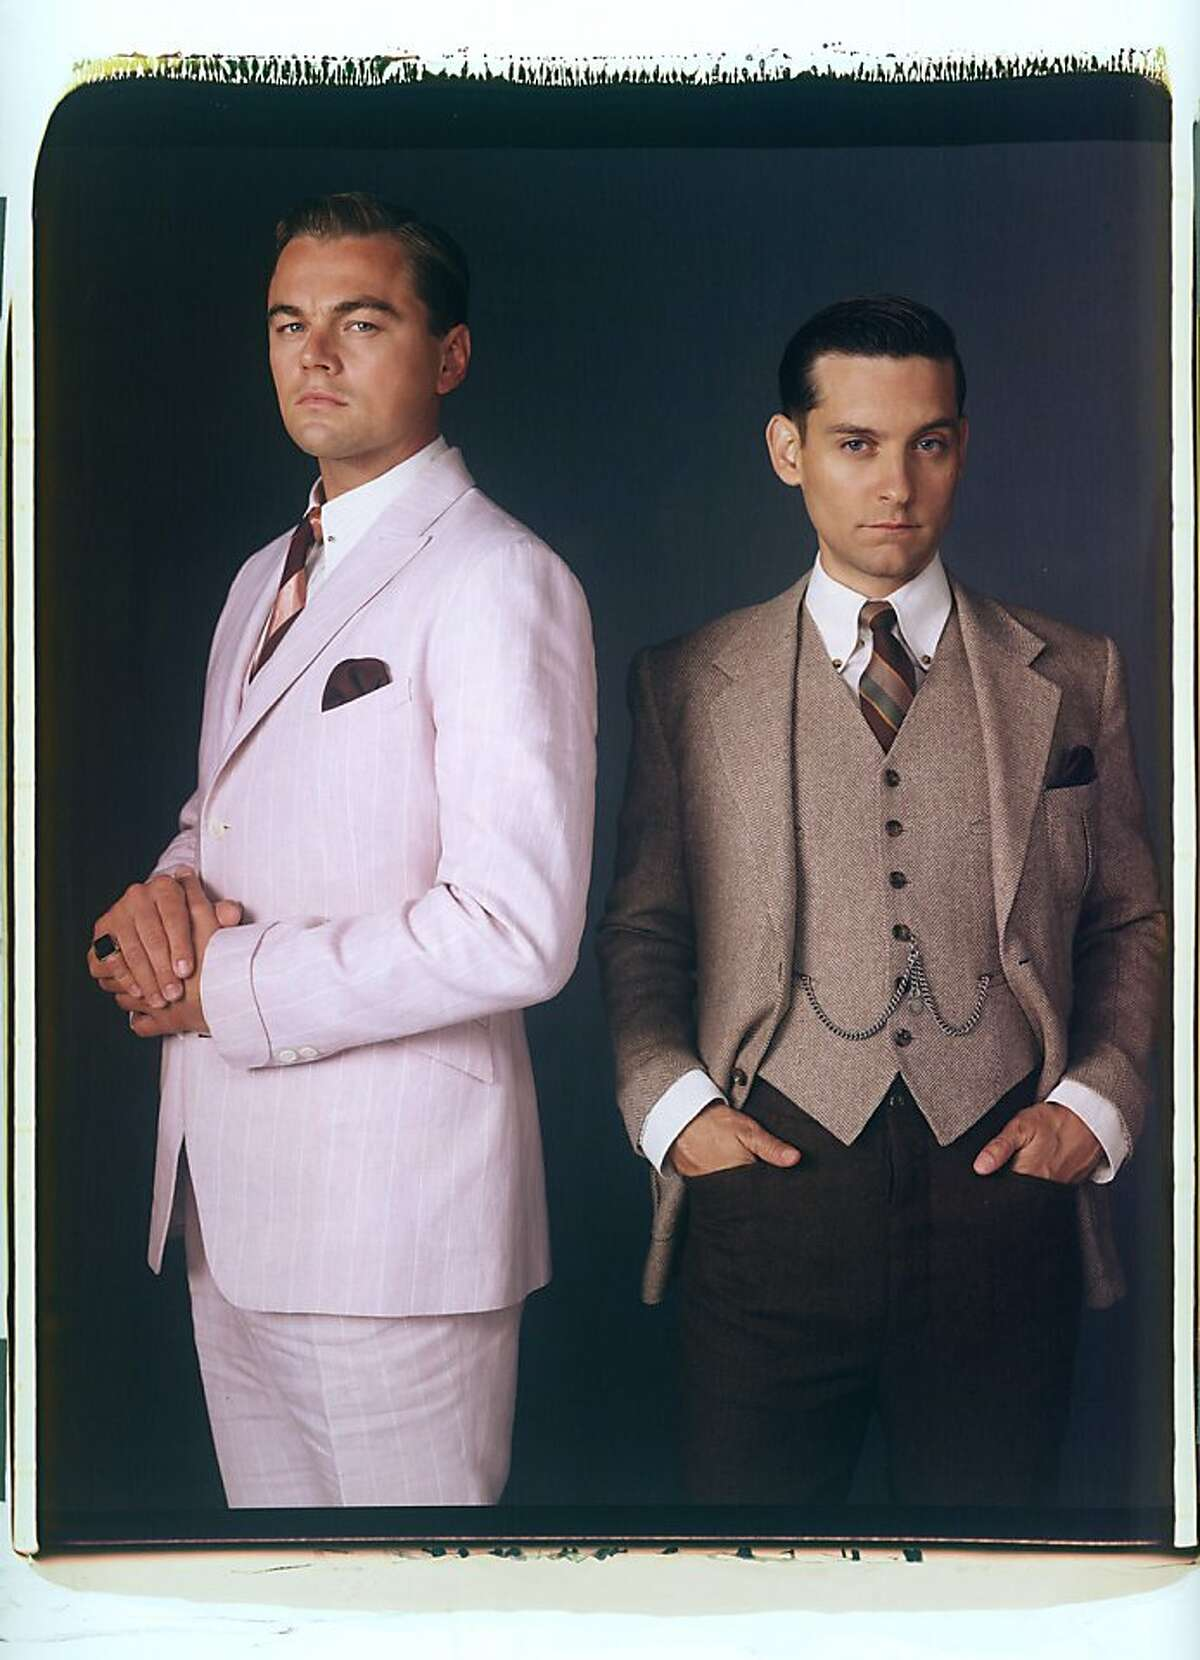 (L-r) Leonardo DiCaprio as Jay Gatsby and Tobey Maguire as Nick Carraway in Warner Bros. Pictures' and Village Roadshow Pictures' drama